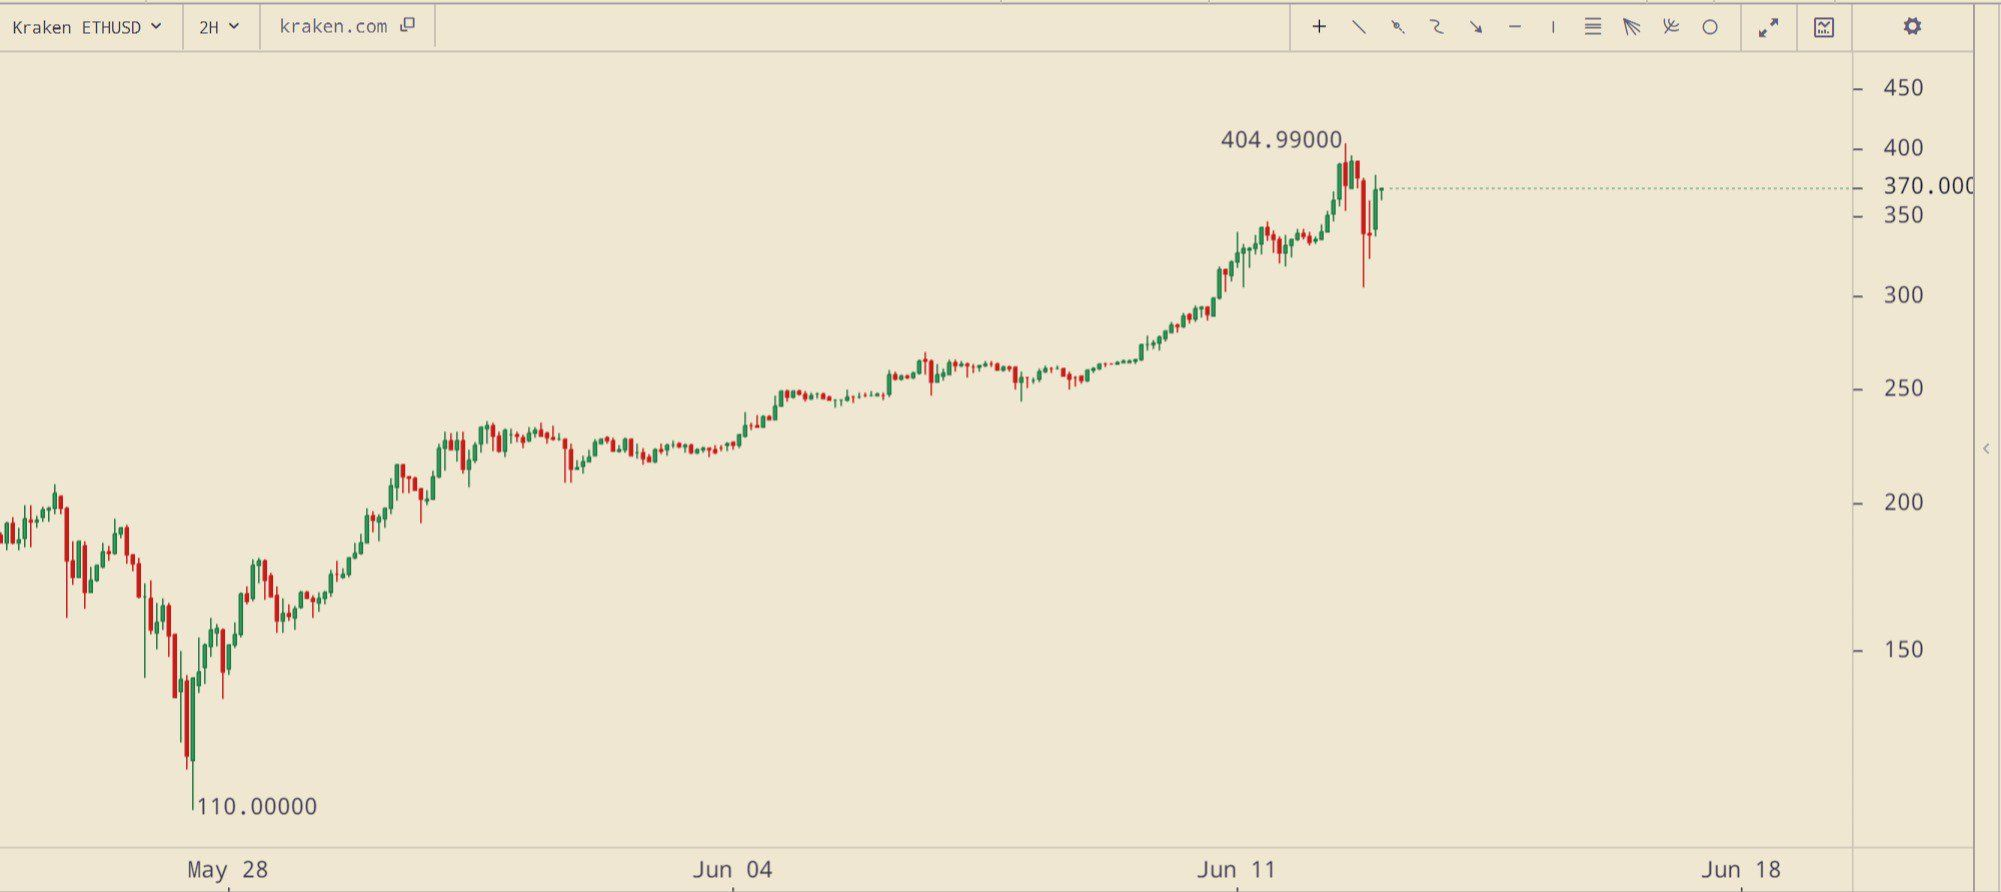 Bitcoin Price Analysis June 13 2017 (With images ...